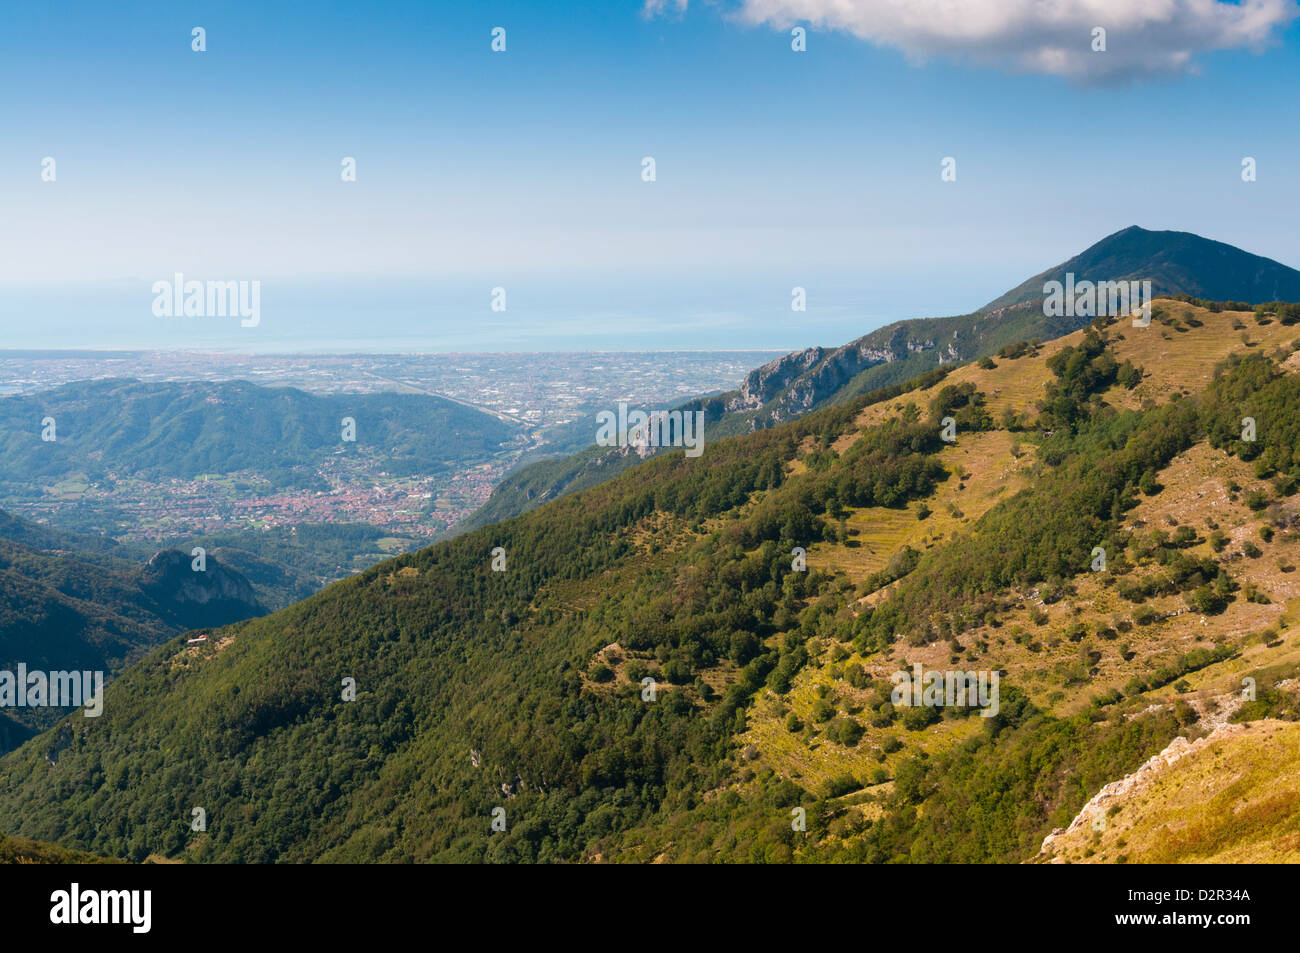 View of Camaiore and Tyrrhenian Sea from Apuan Alps (Alpi Apuane), Lucca Province, Tuscany, Italy, Europe - Stock Image